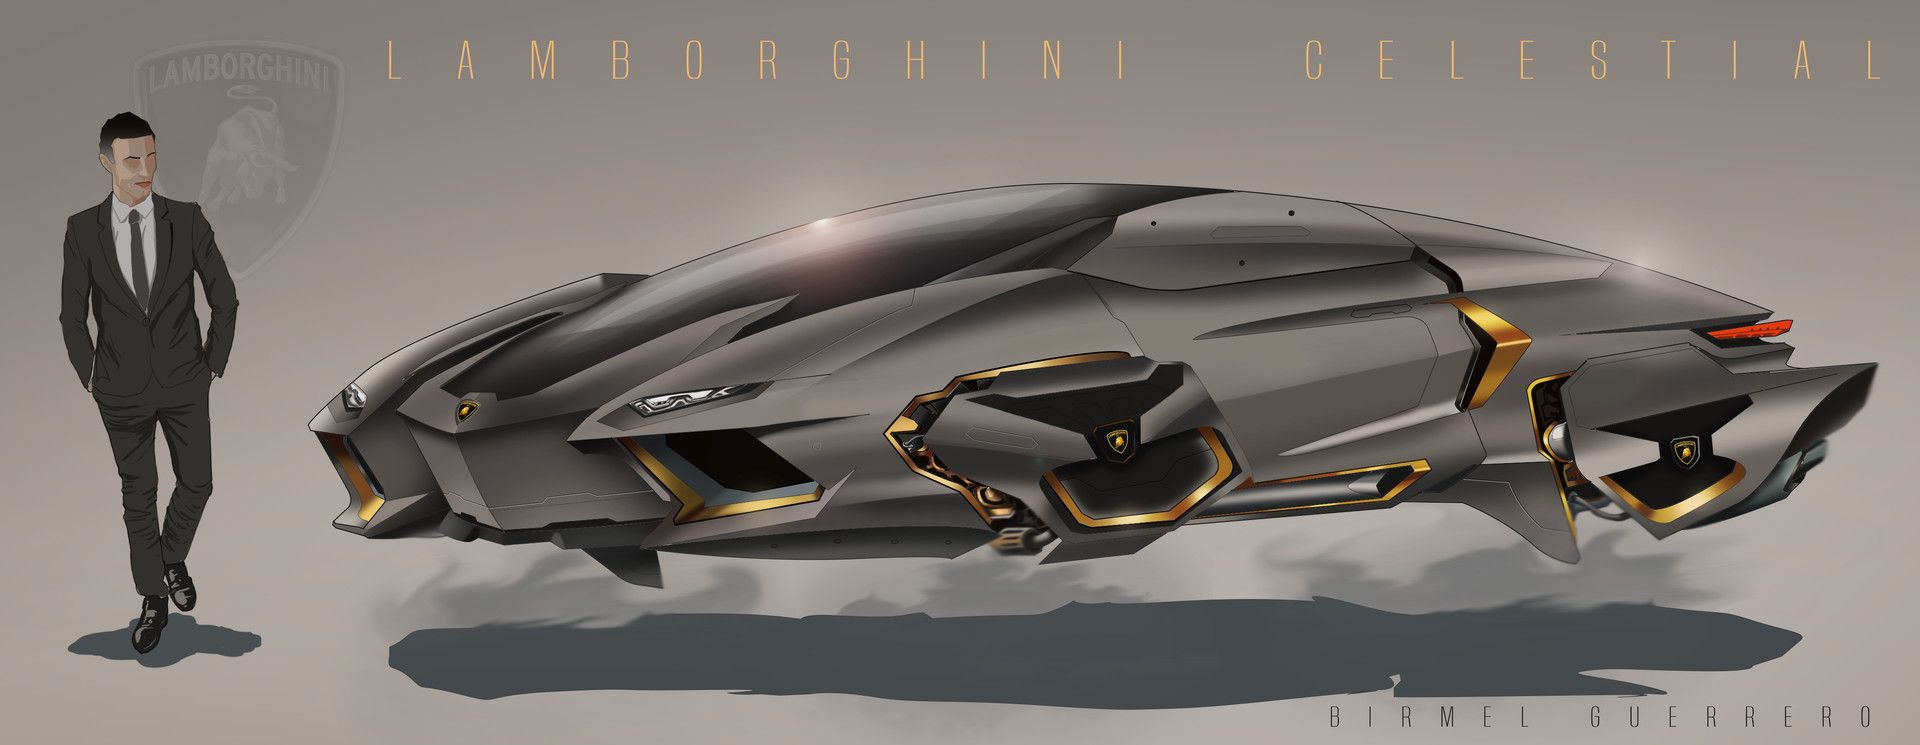 Concept Lamborghini Set In The Year 2060. And Yes Hopefully By Then We Will  Have Flying Cars.